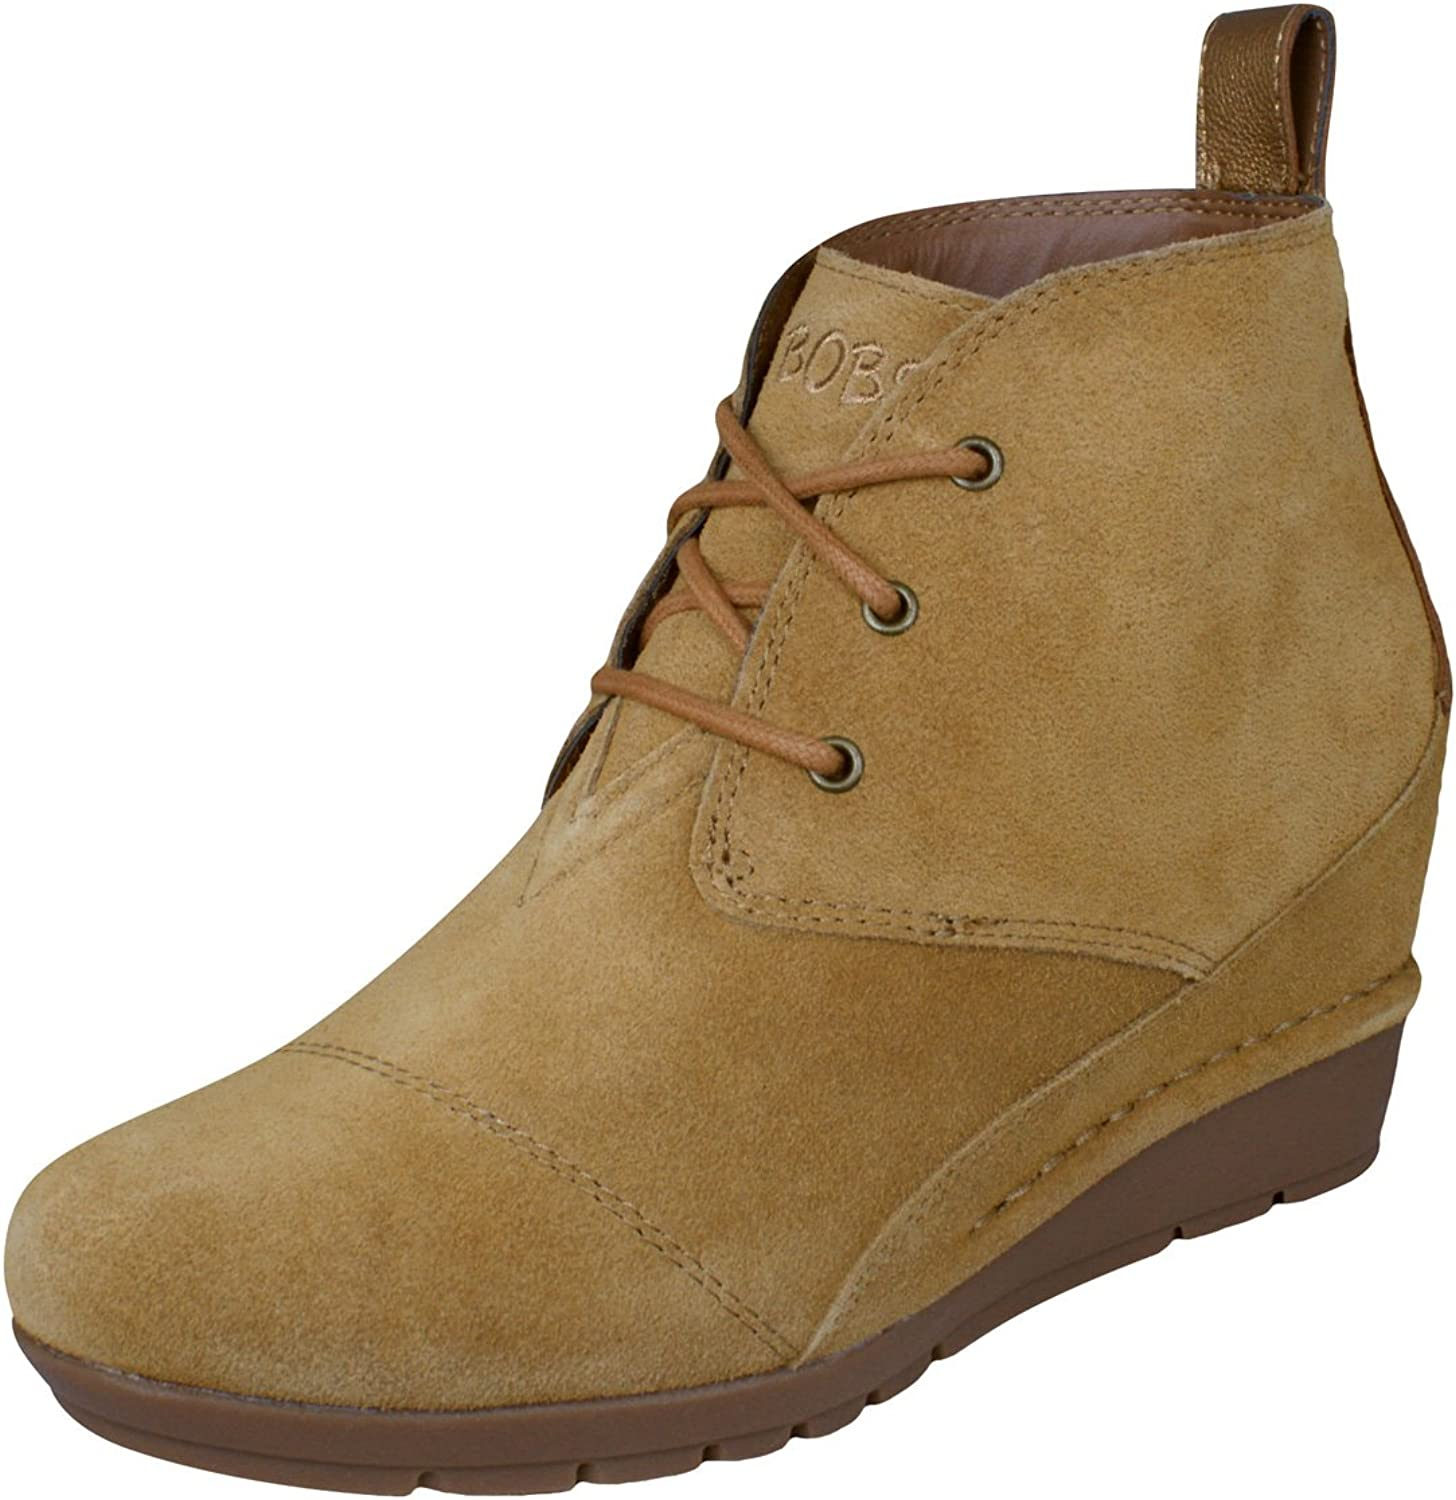 Skechers Womens Bobs Boots High Peaks Casual Suede Ankle Wedges